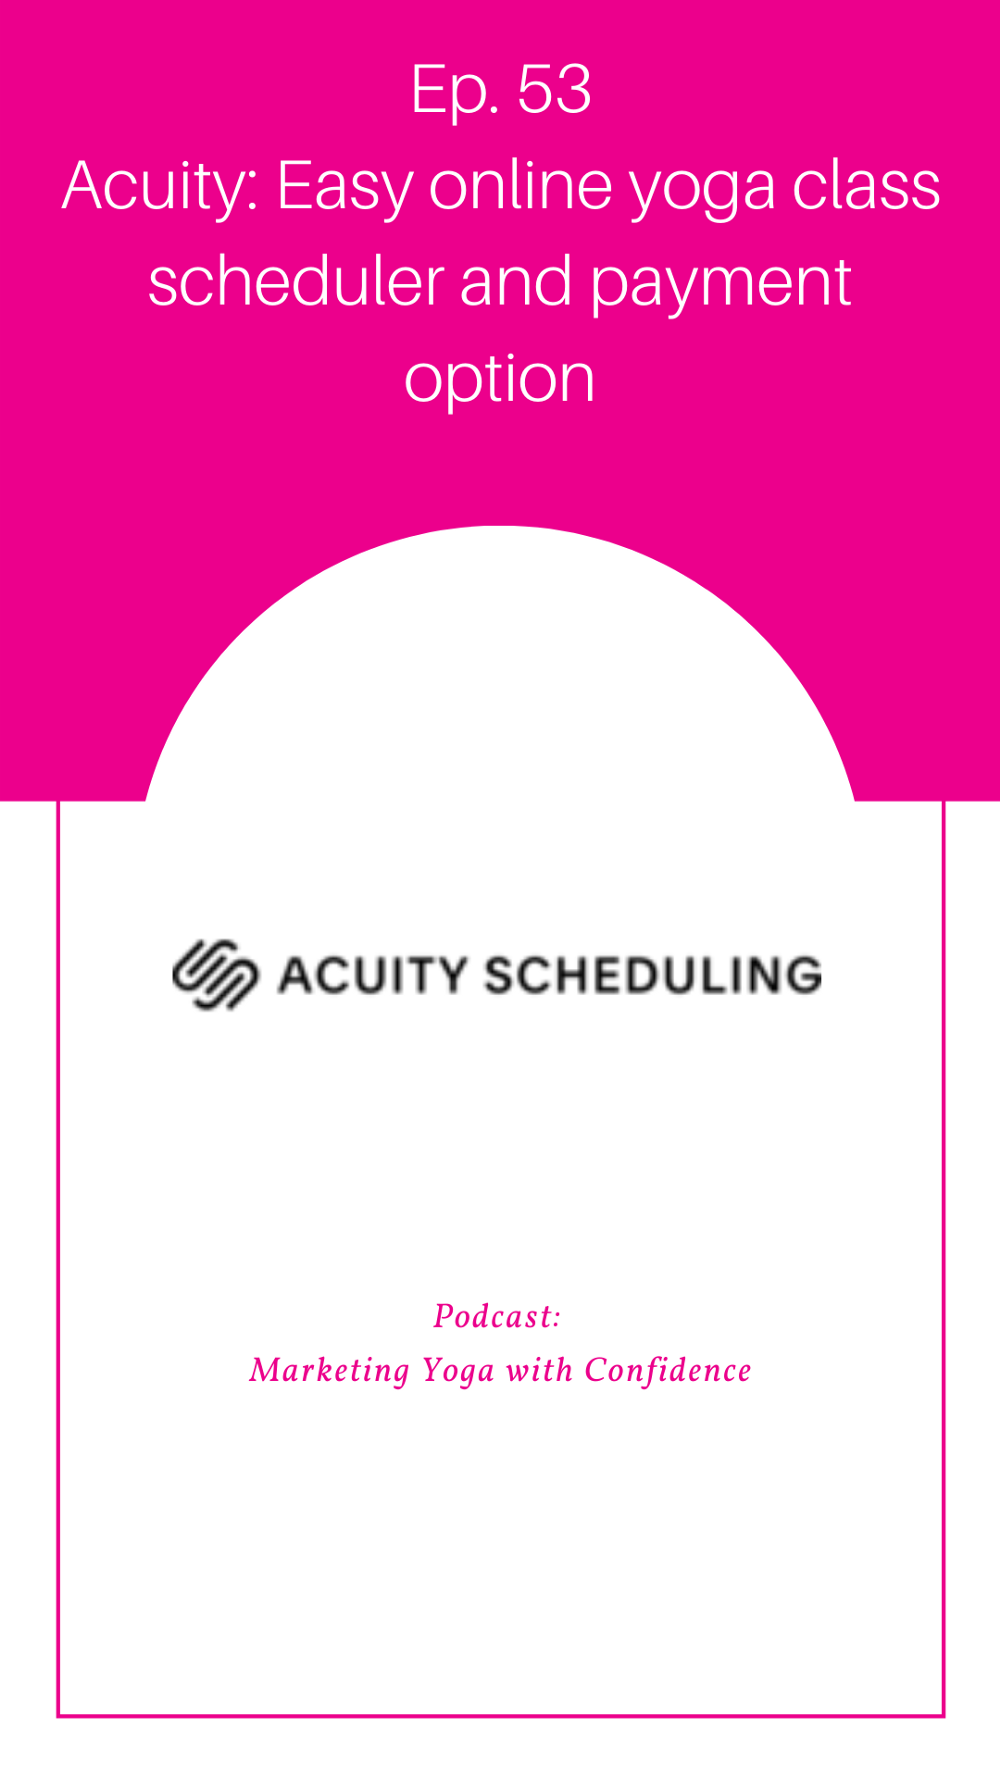 Acuity Scheduling: Easy online yoga class scheduler and payment option